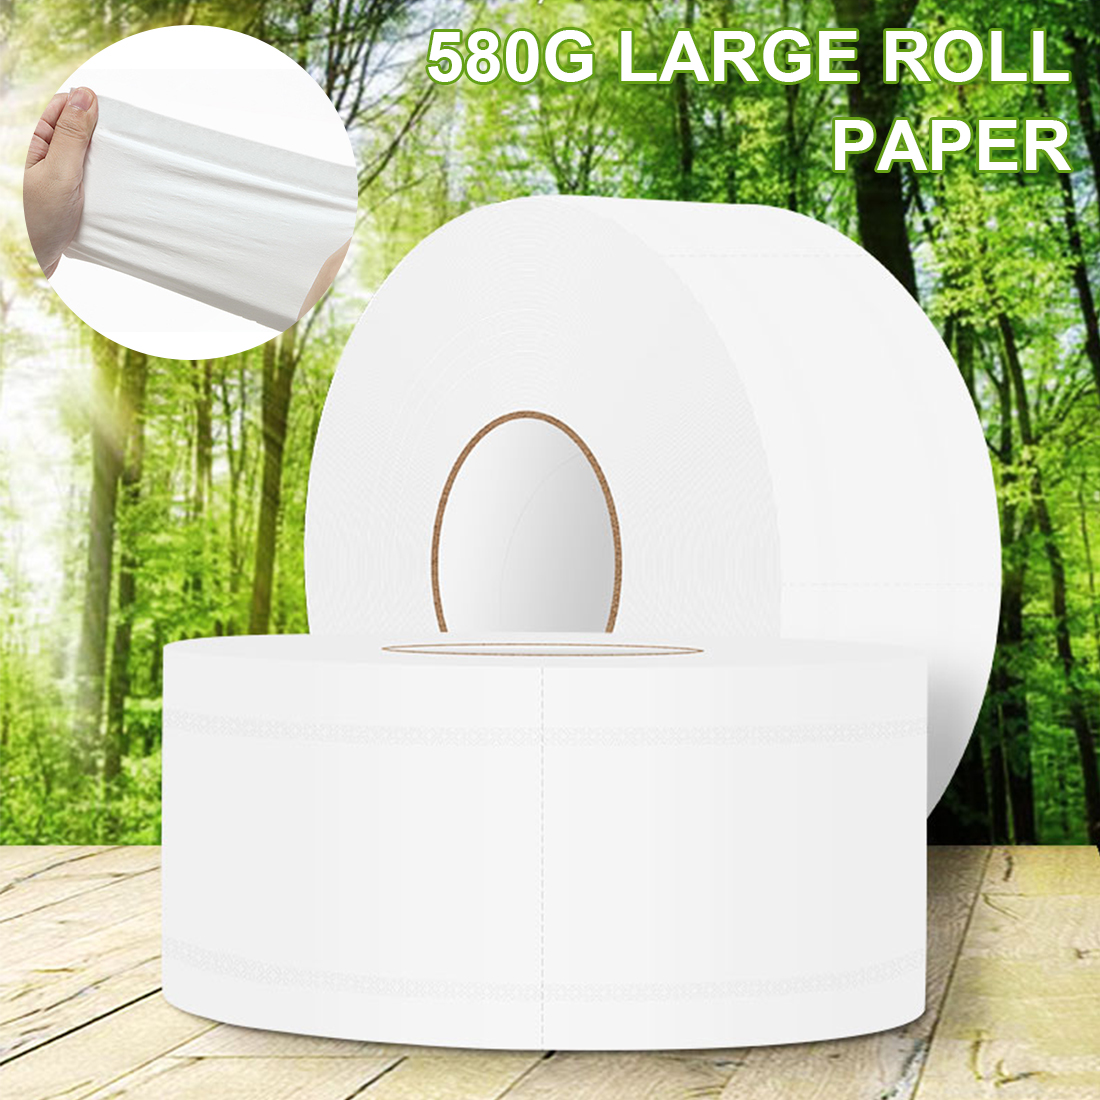 1 Roll 580g/roll 900+sheets Jumbo Roll Toilet Paper Virgin Wood Pulp Towels Adjunct Non-Smell Soft Tissue For Home Public Hotel